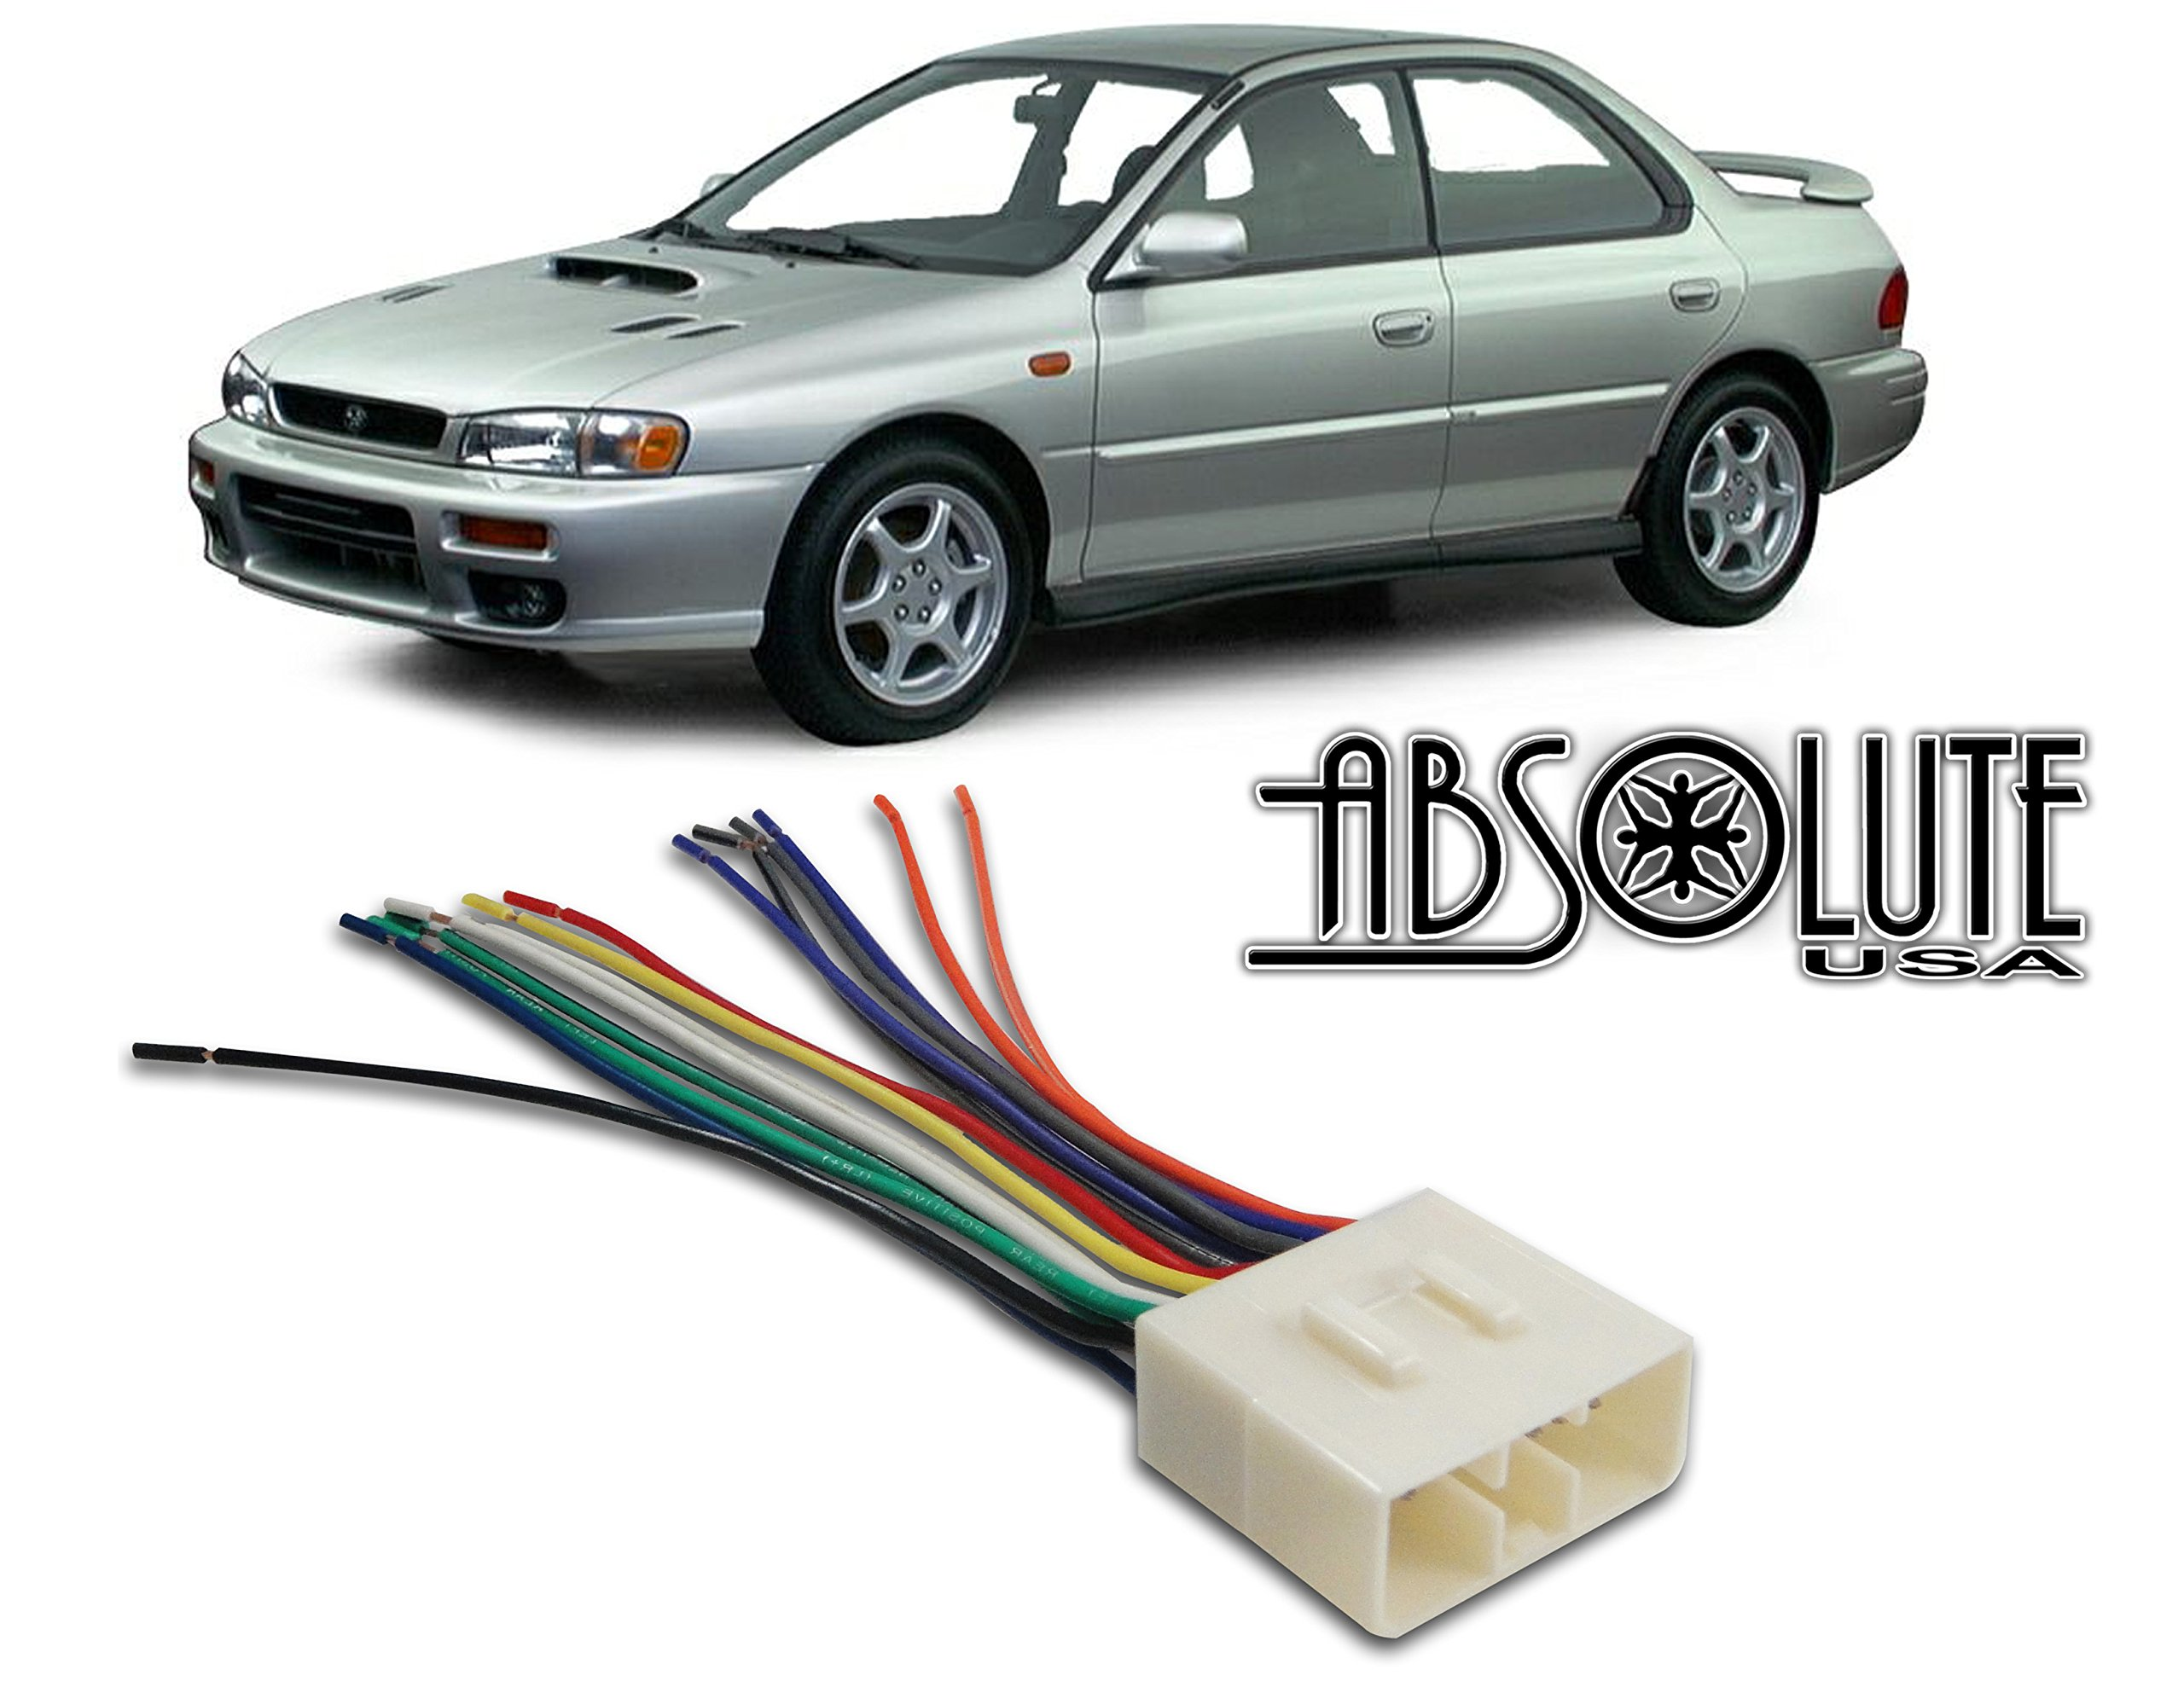 Buy Stereo Wire Harness Subaru Impreza 02 03 04 05 Aftermarket Radio How To Install Wiring For Car Installation